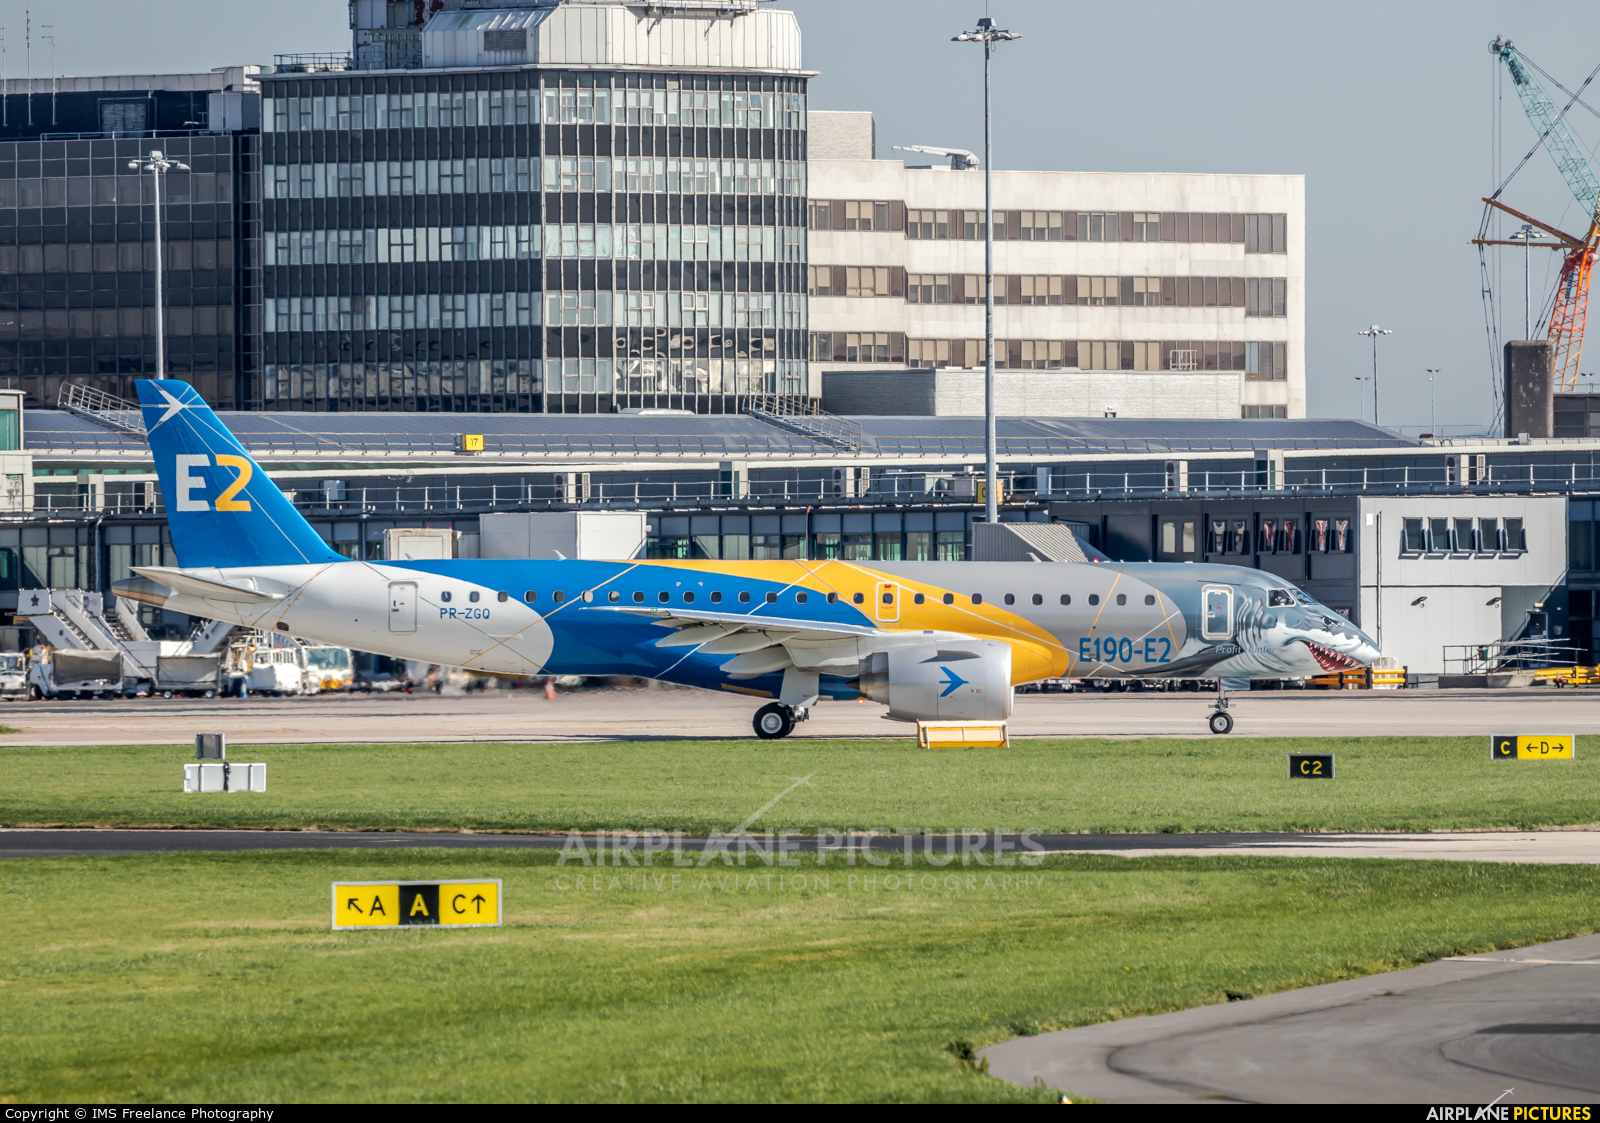 Embraer PR-ZGQ aircraft at Manchester